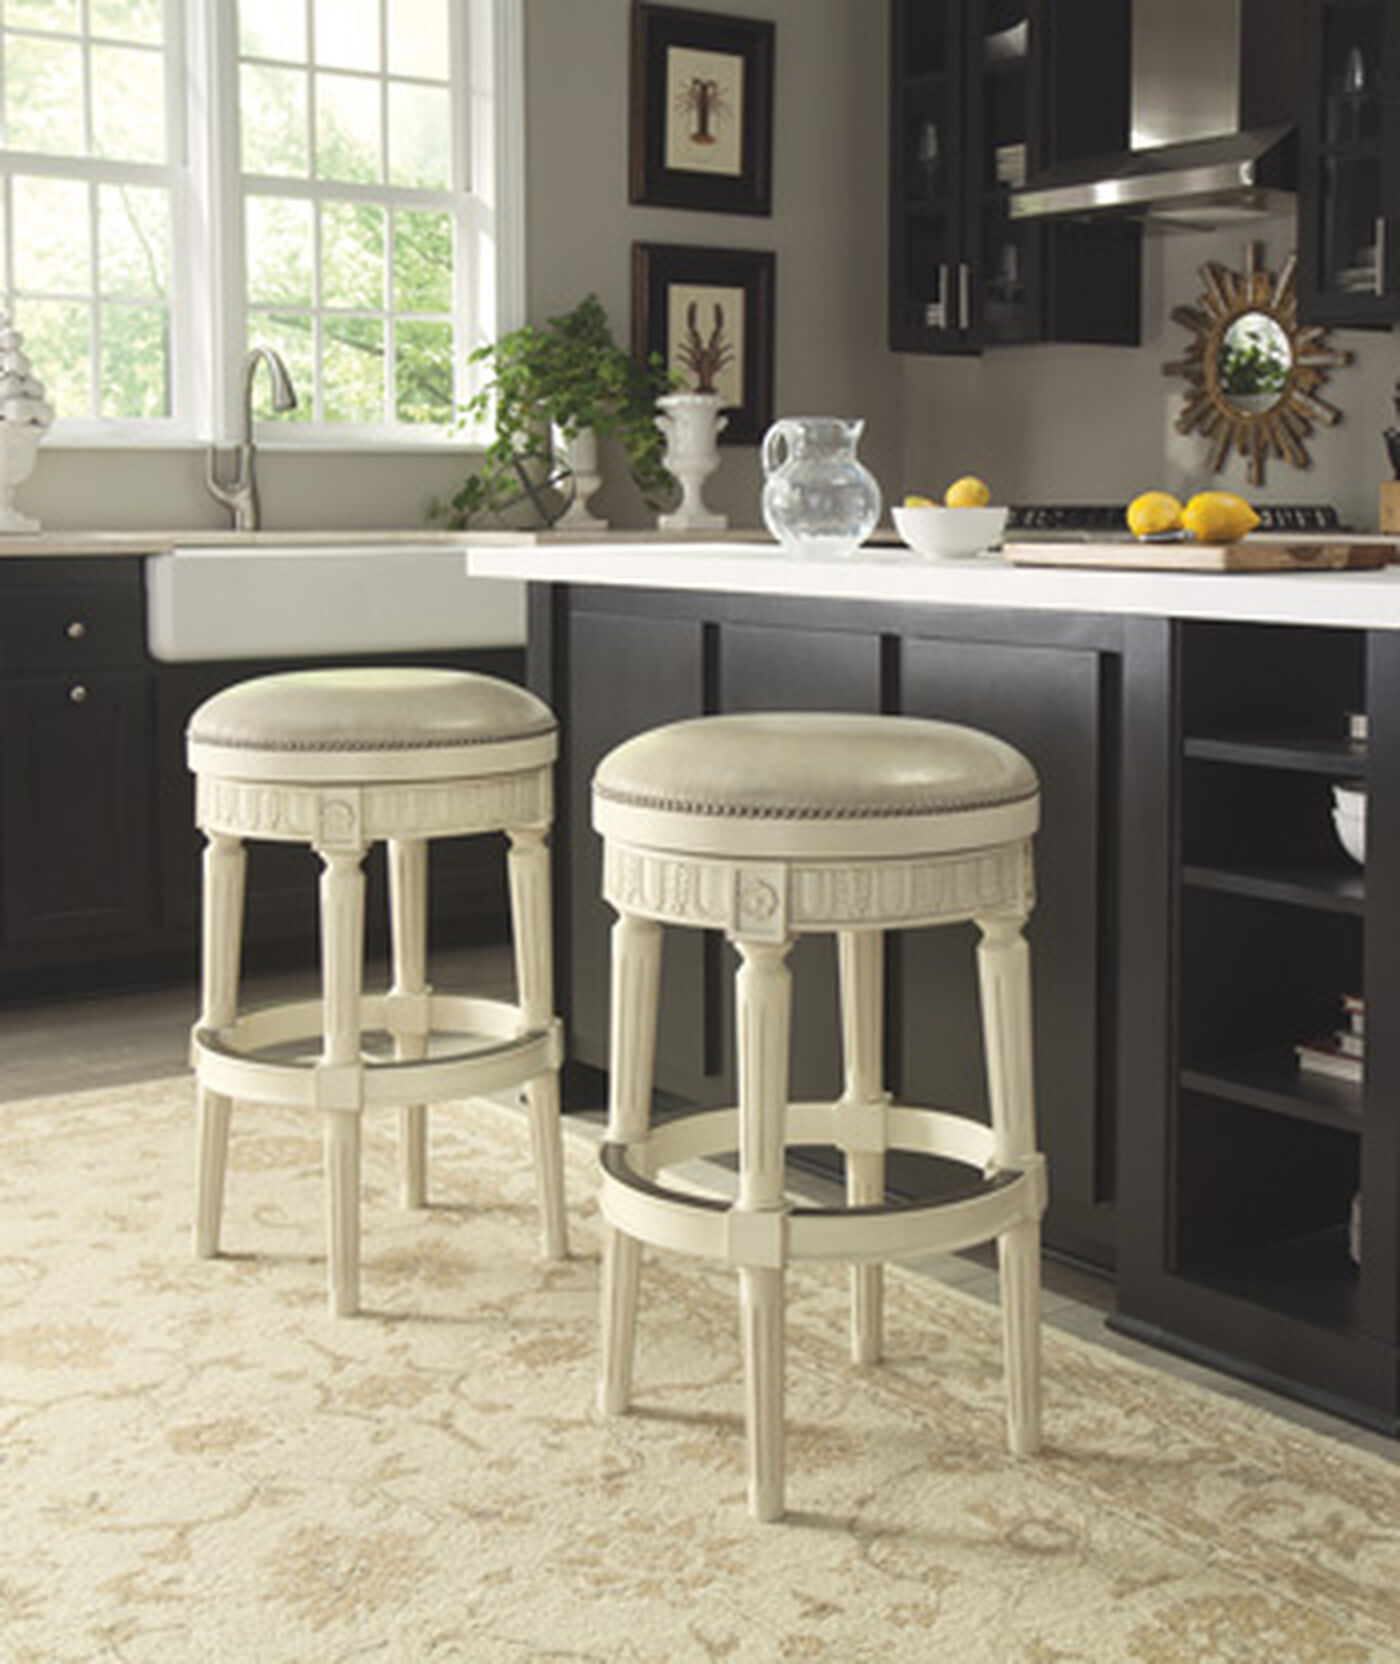 Traditional 30 5 Quot Swivel Bar Stool In Antique White